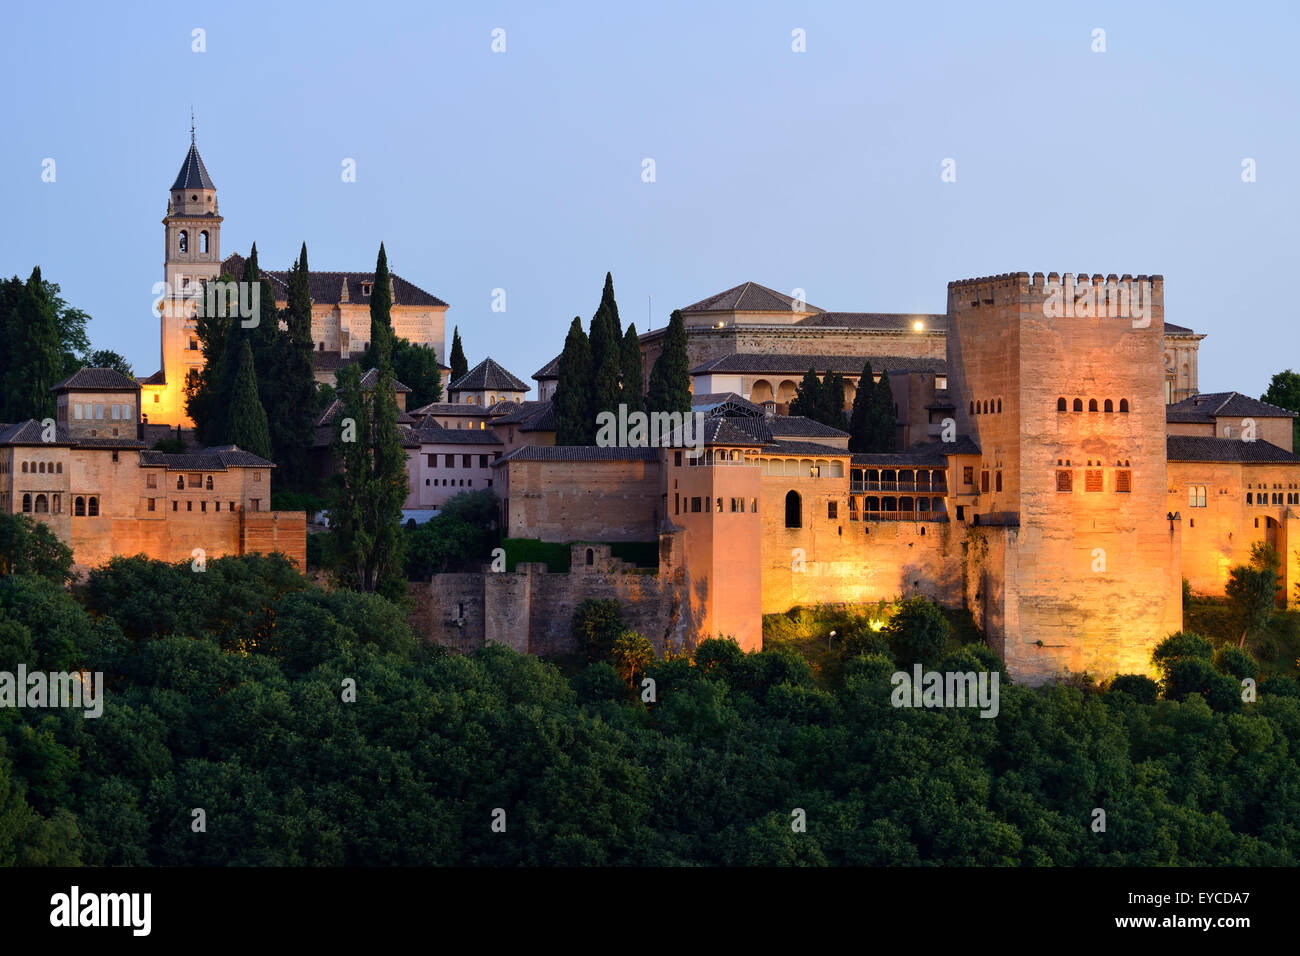 View of Alhambra Palace complex at dusk in Granada, Andalusia, Spain - Stock Image